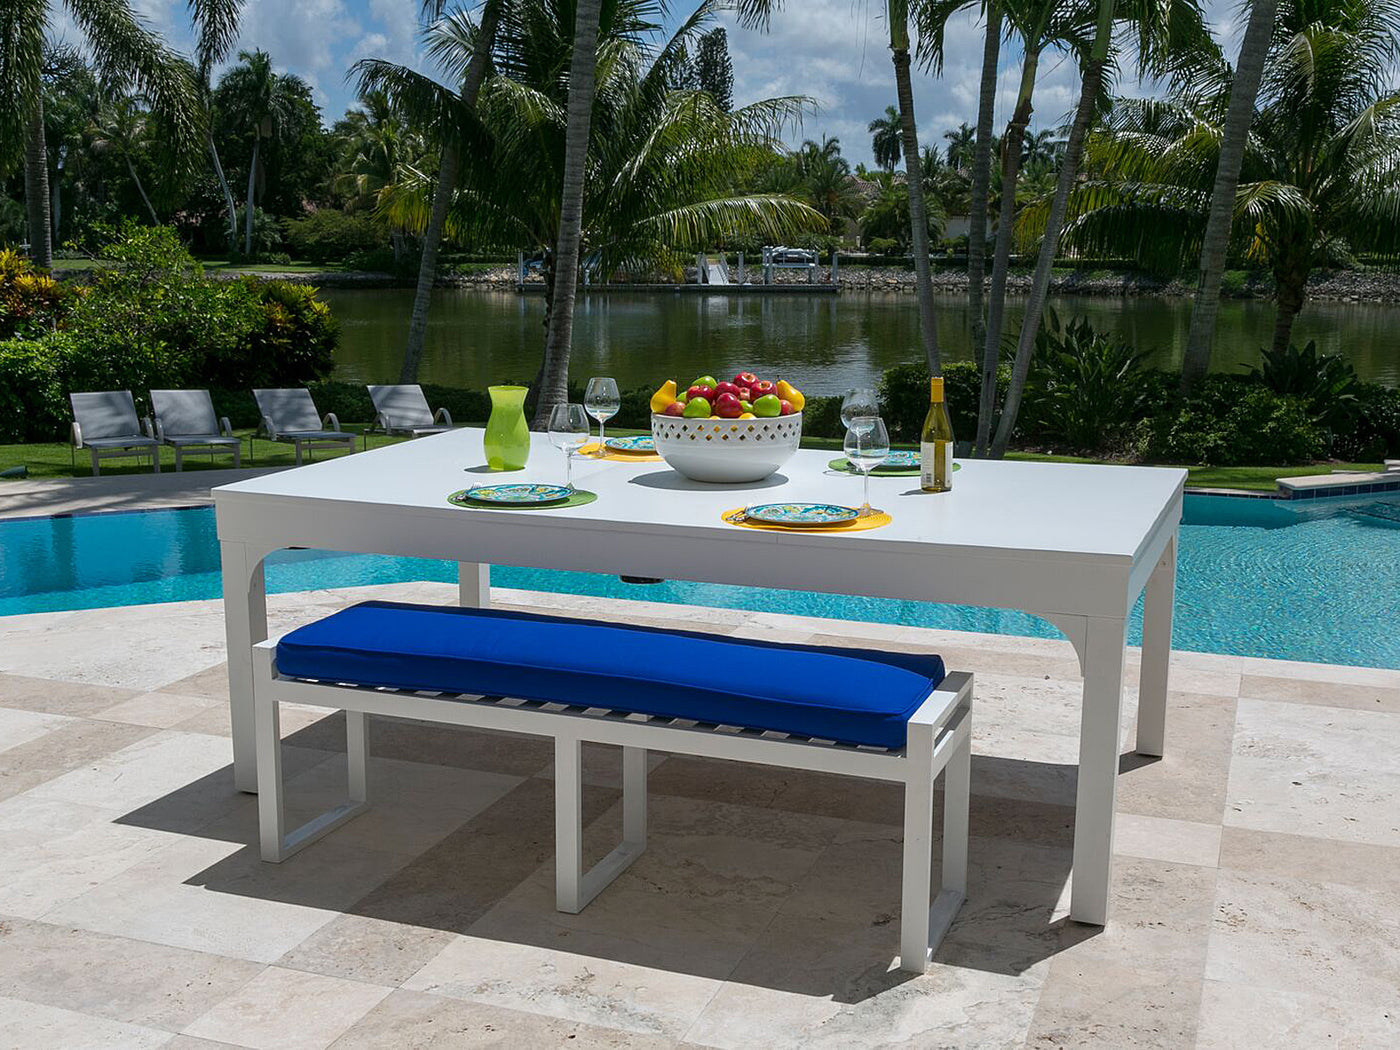 Balcony Outdoor Pool Table With Dining Top White ...